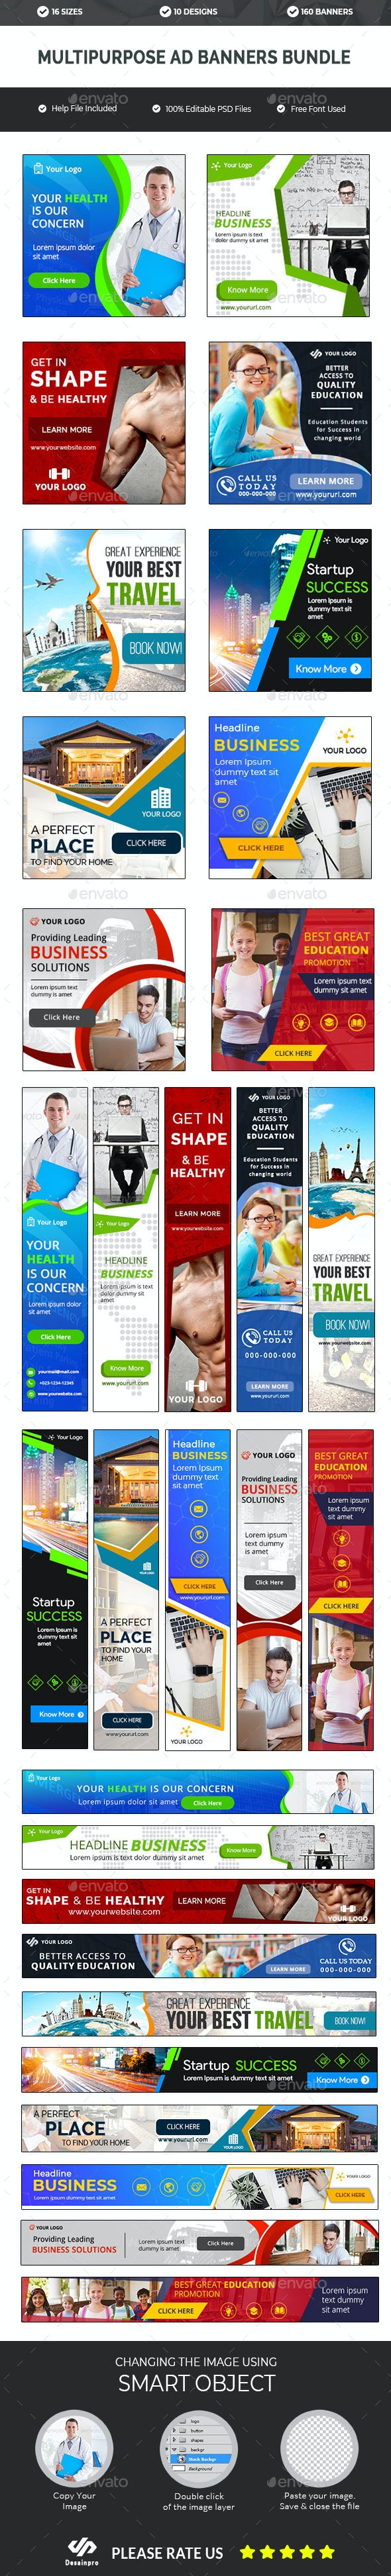 Multipurpose Banners Bundle - 10 Sets - 160 Banners - AR - Banners & Ads Web Elements